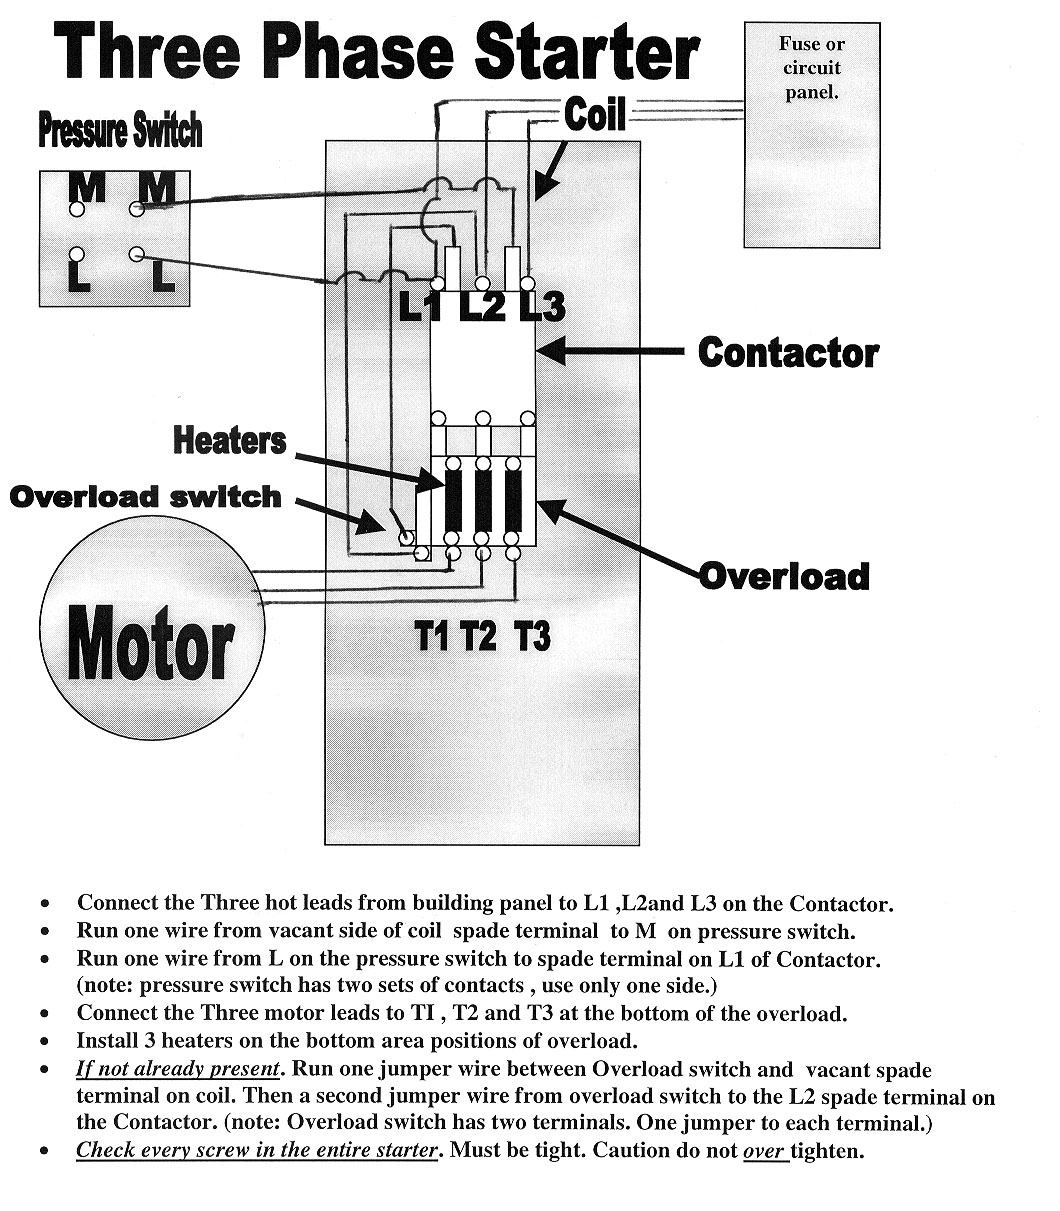 3 Phase Electric Motor Starter Wiring Diagram from static-cdn.imageservice.cloud